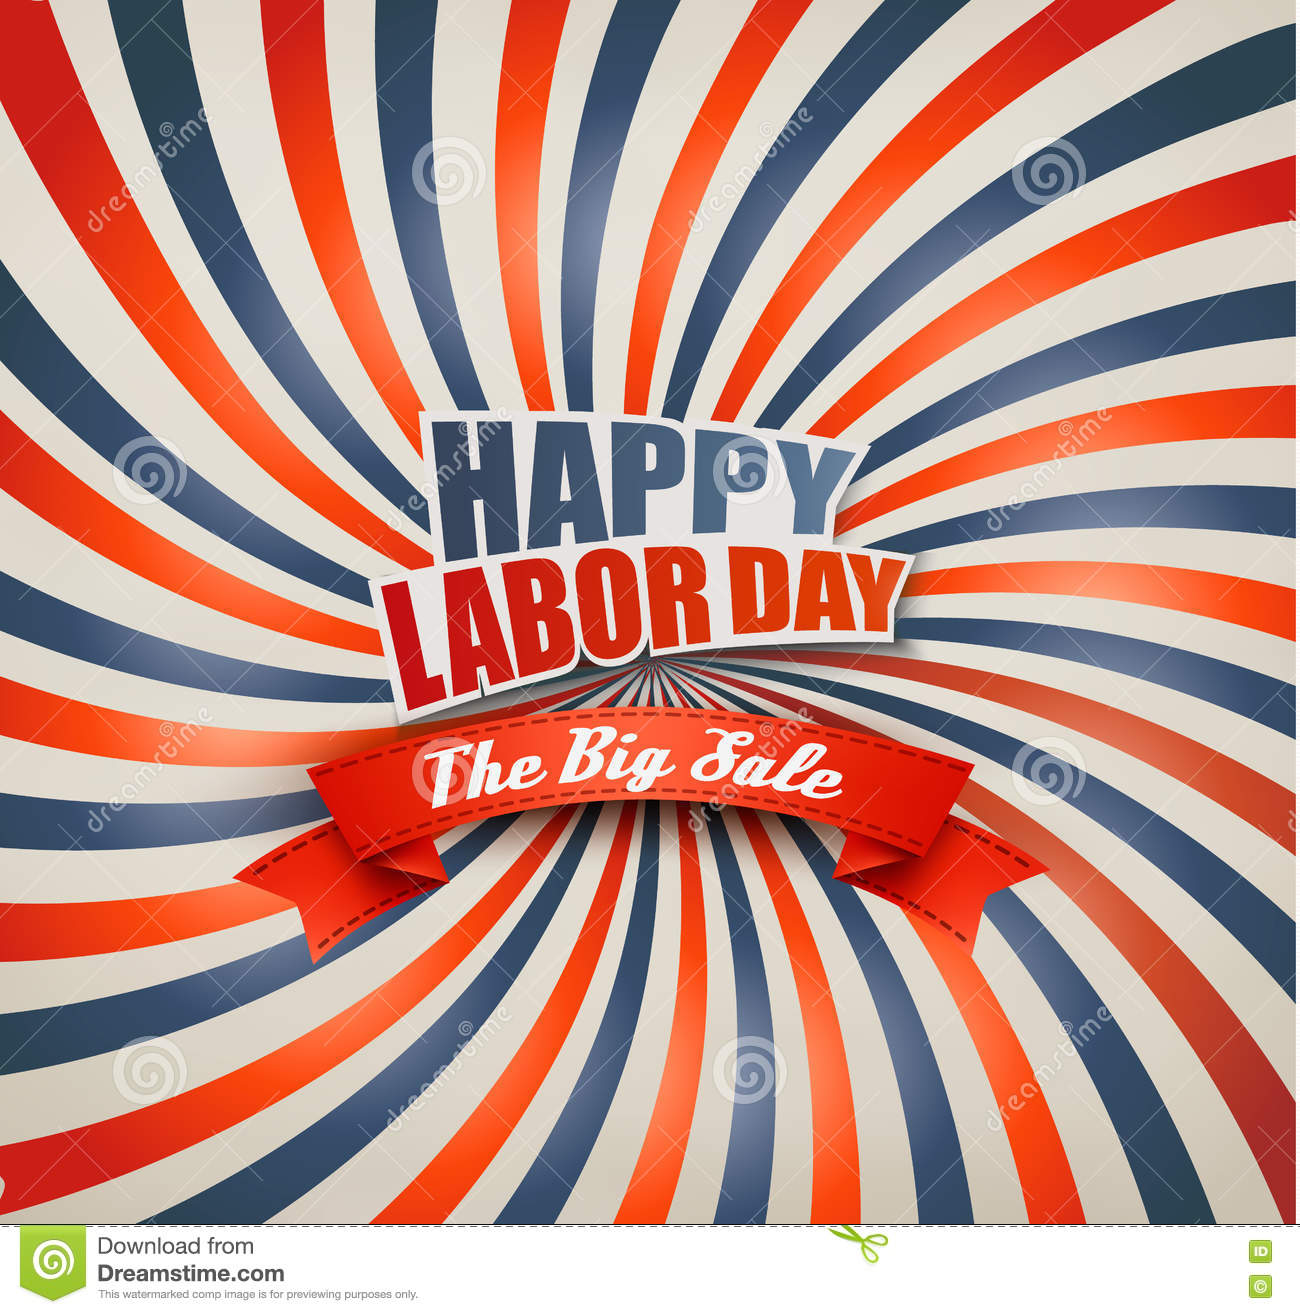 What date is labor day in Perth